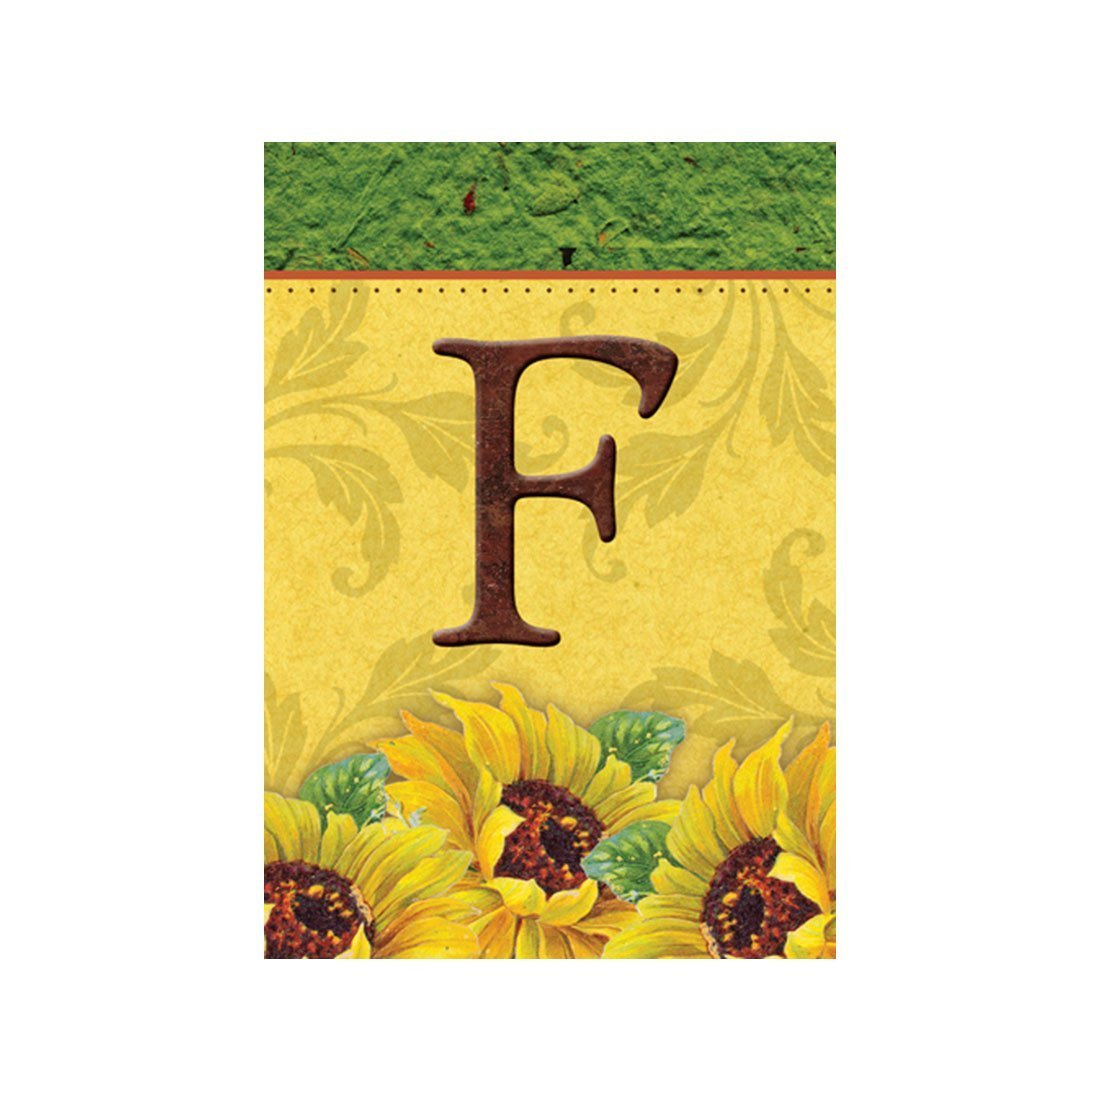 Buy Lvsure Flag Sunflower Monogram F Garden Flags Decorative Flags